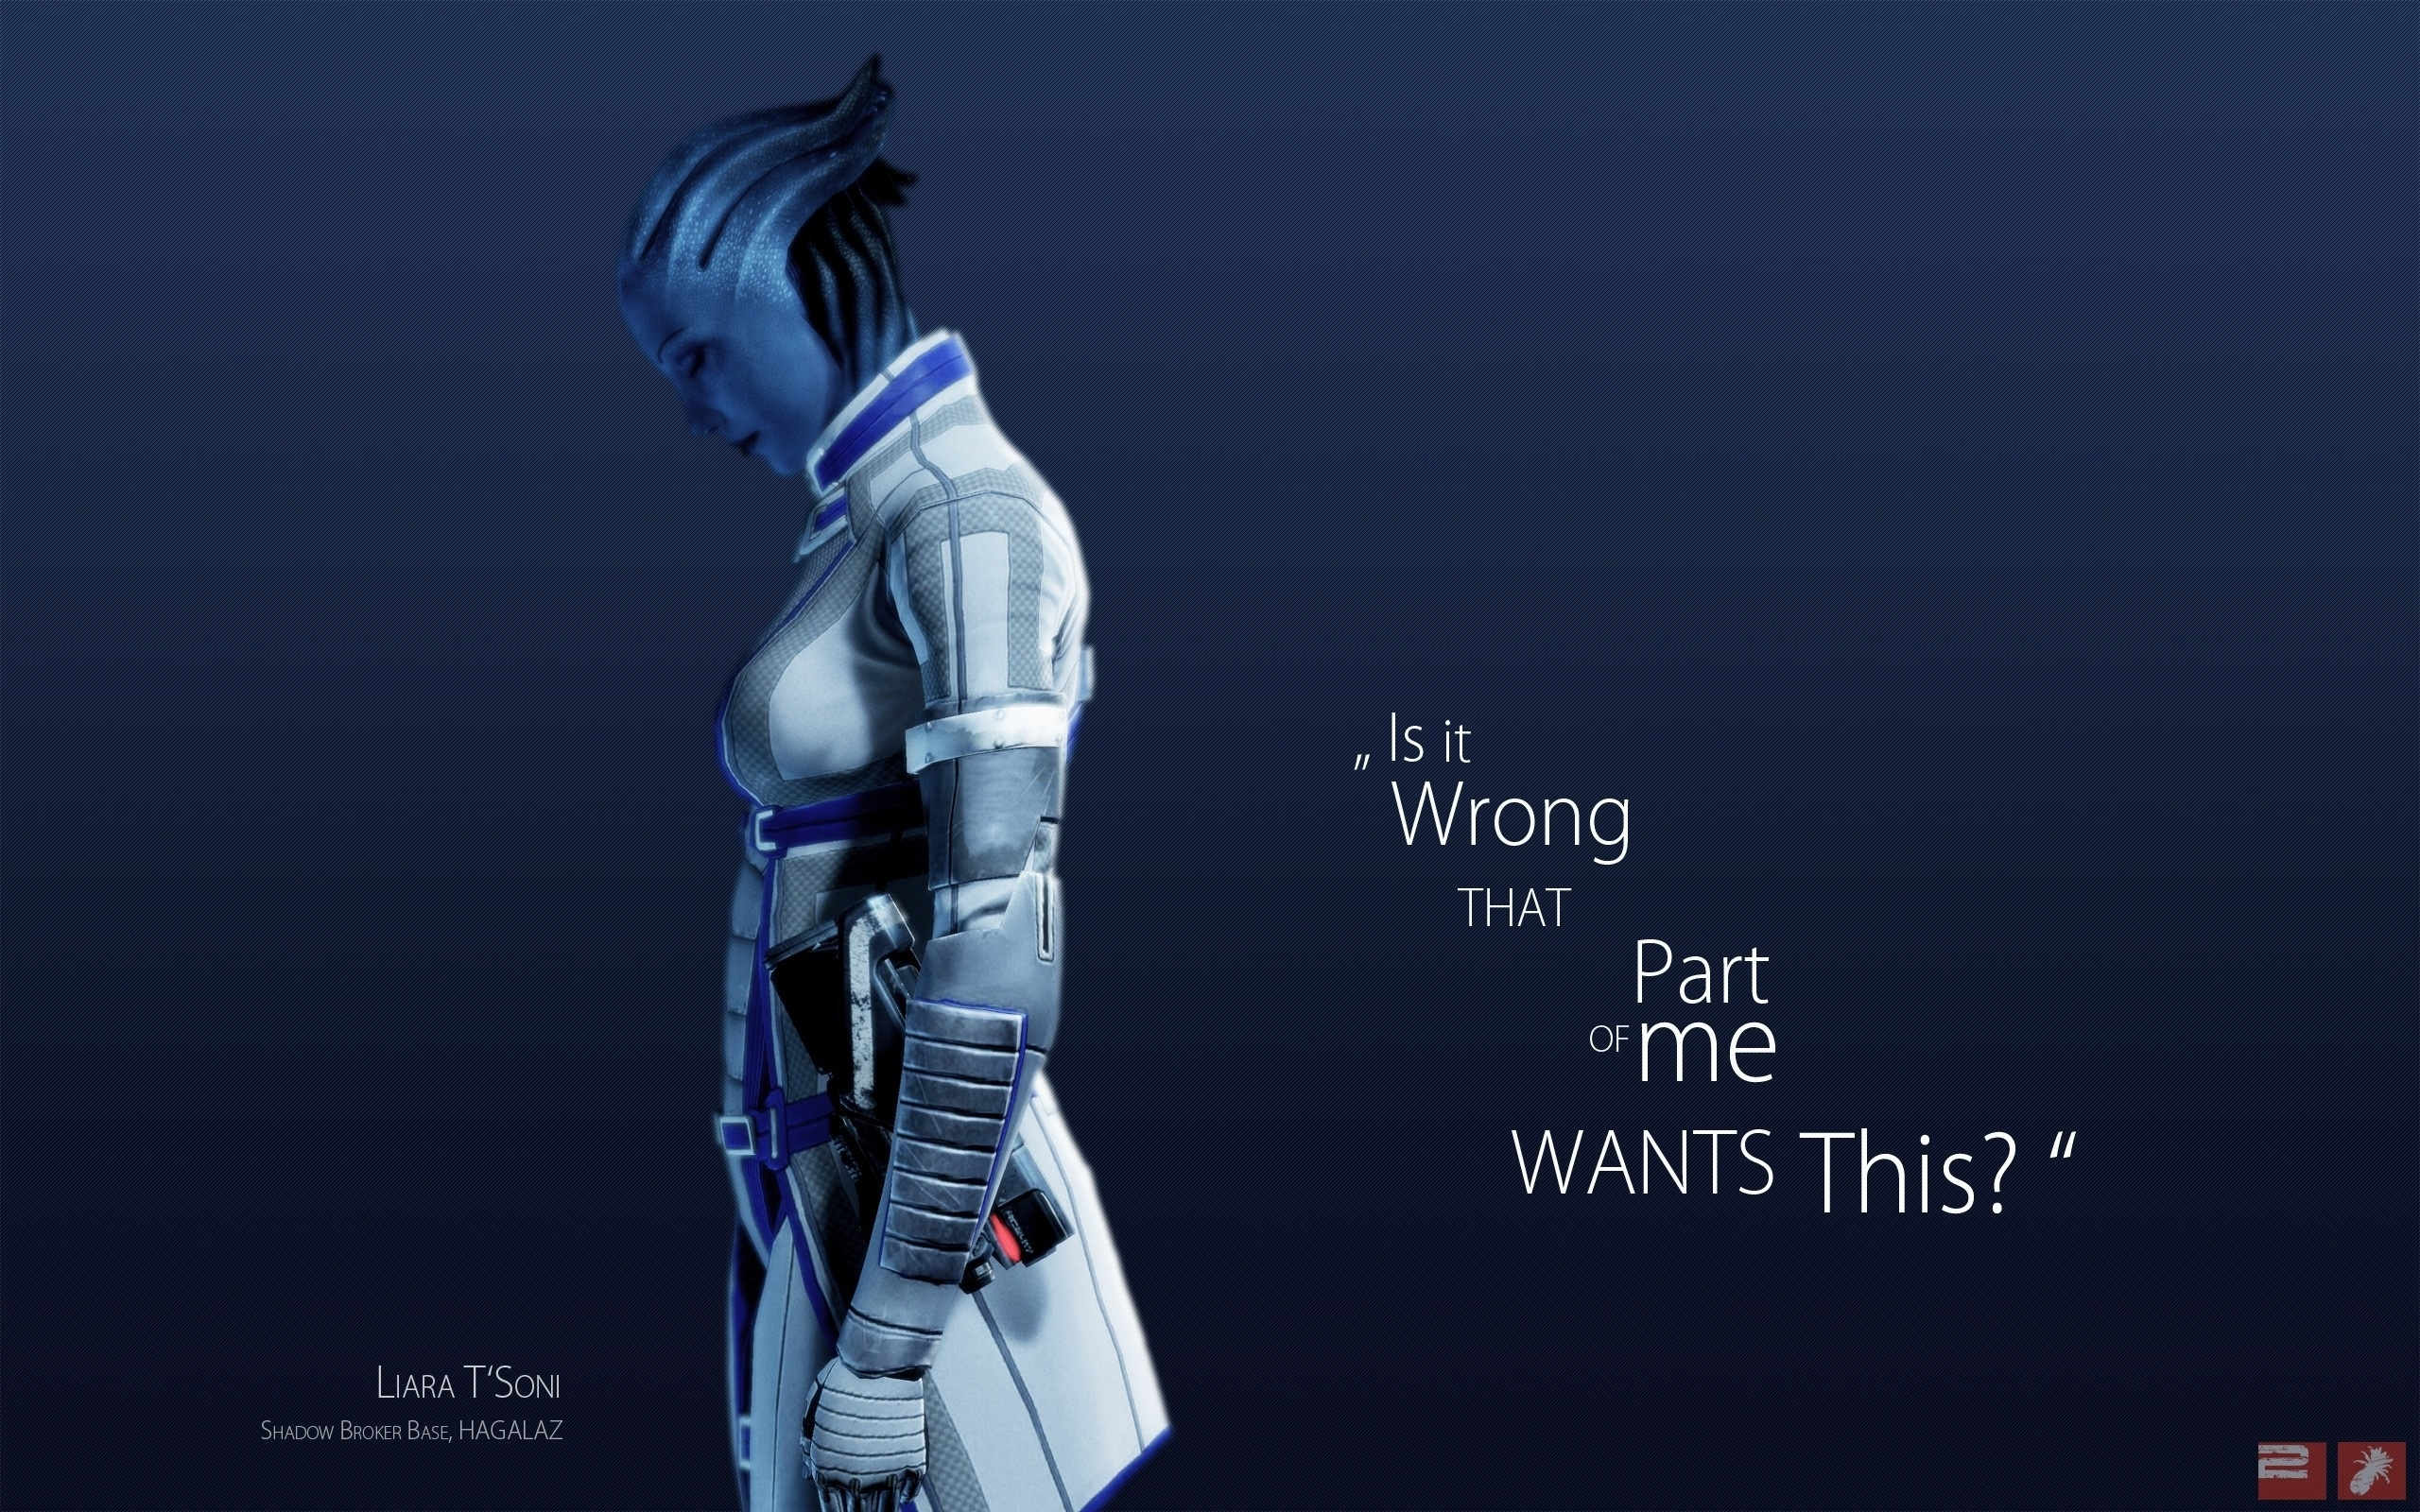 mass effect rp images dr liara t'soni hd wallpaper and background